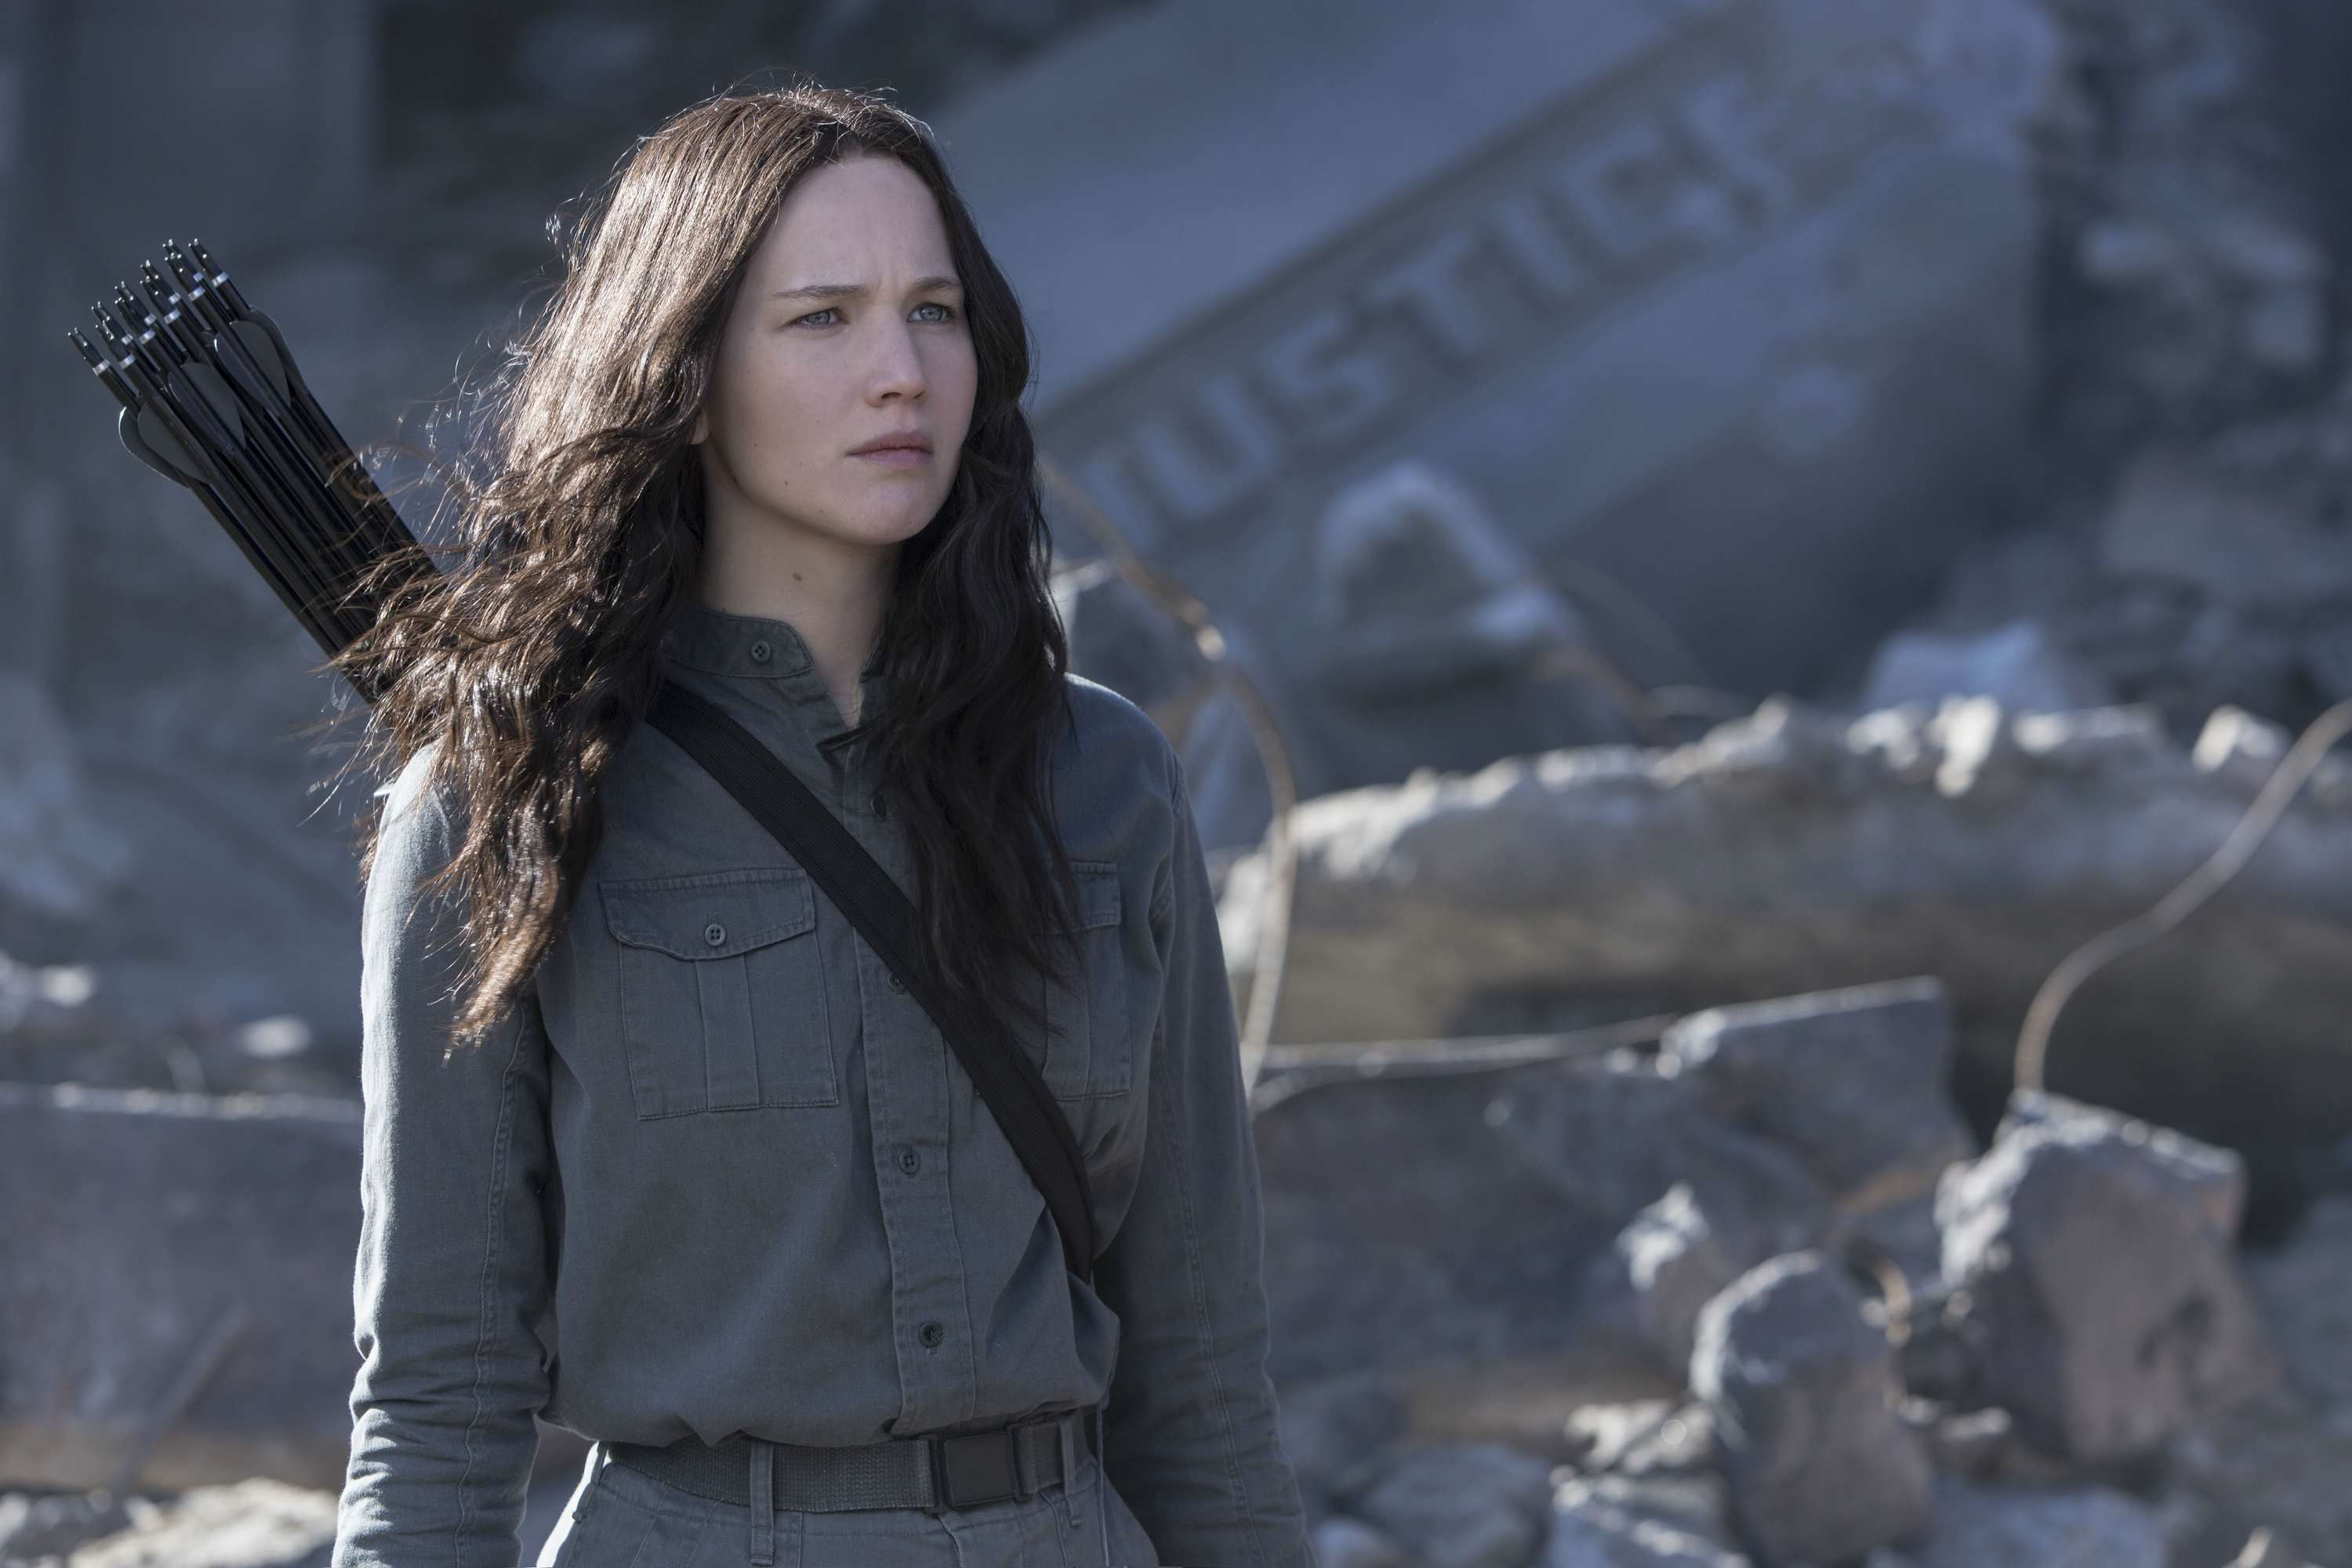 Jennifer Lawrence as Katniss Everdeen in Mockingjay Part 1